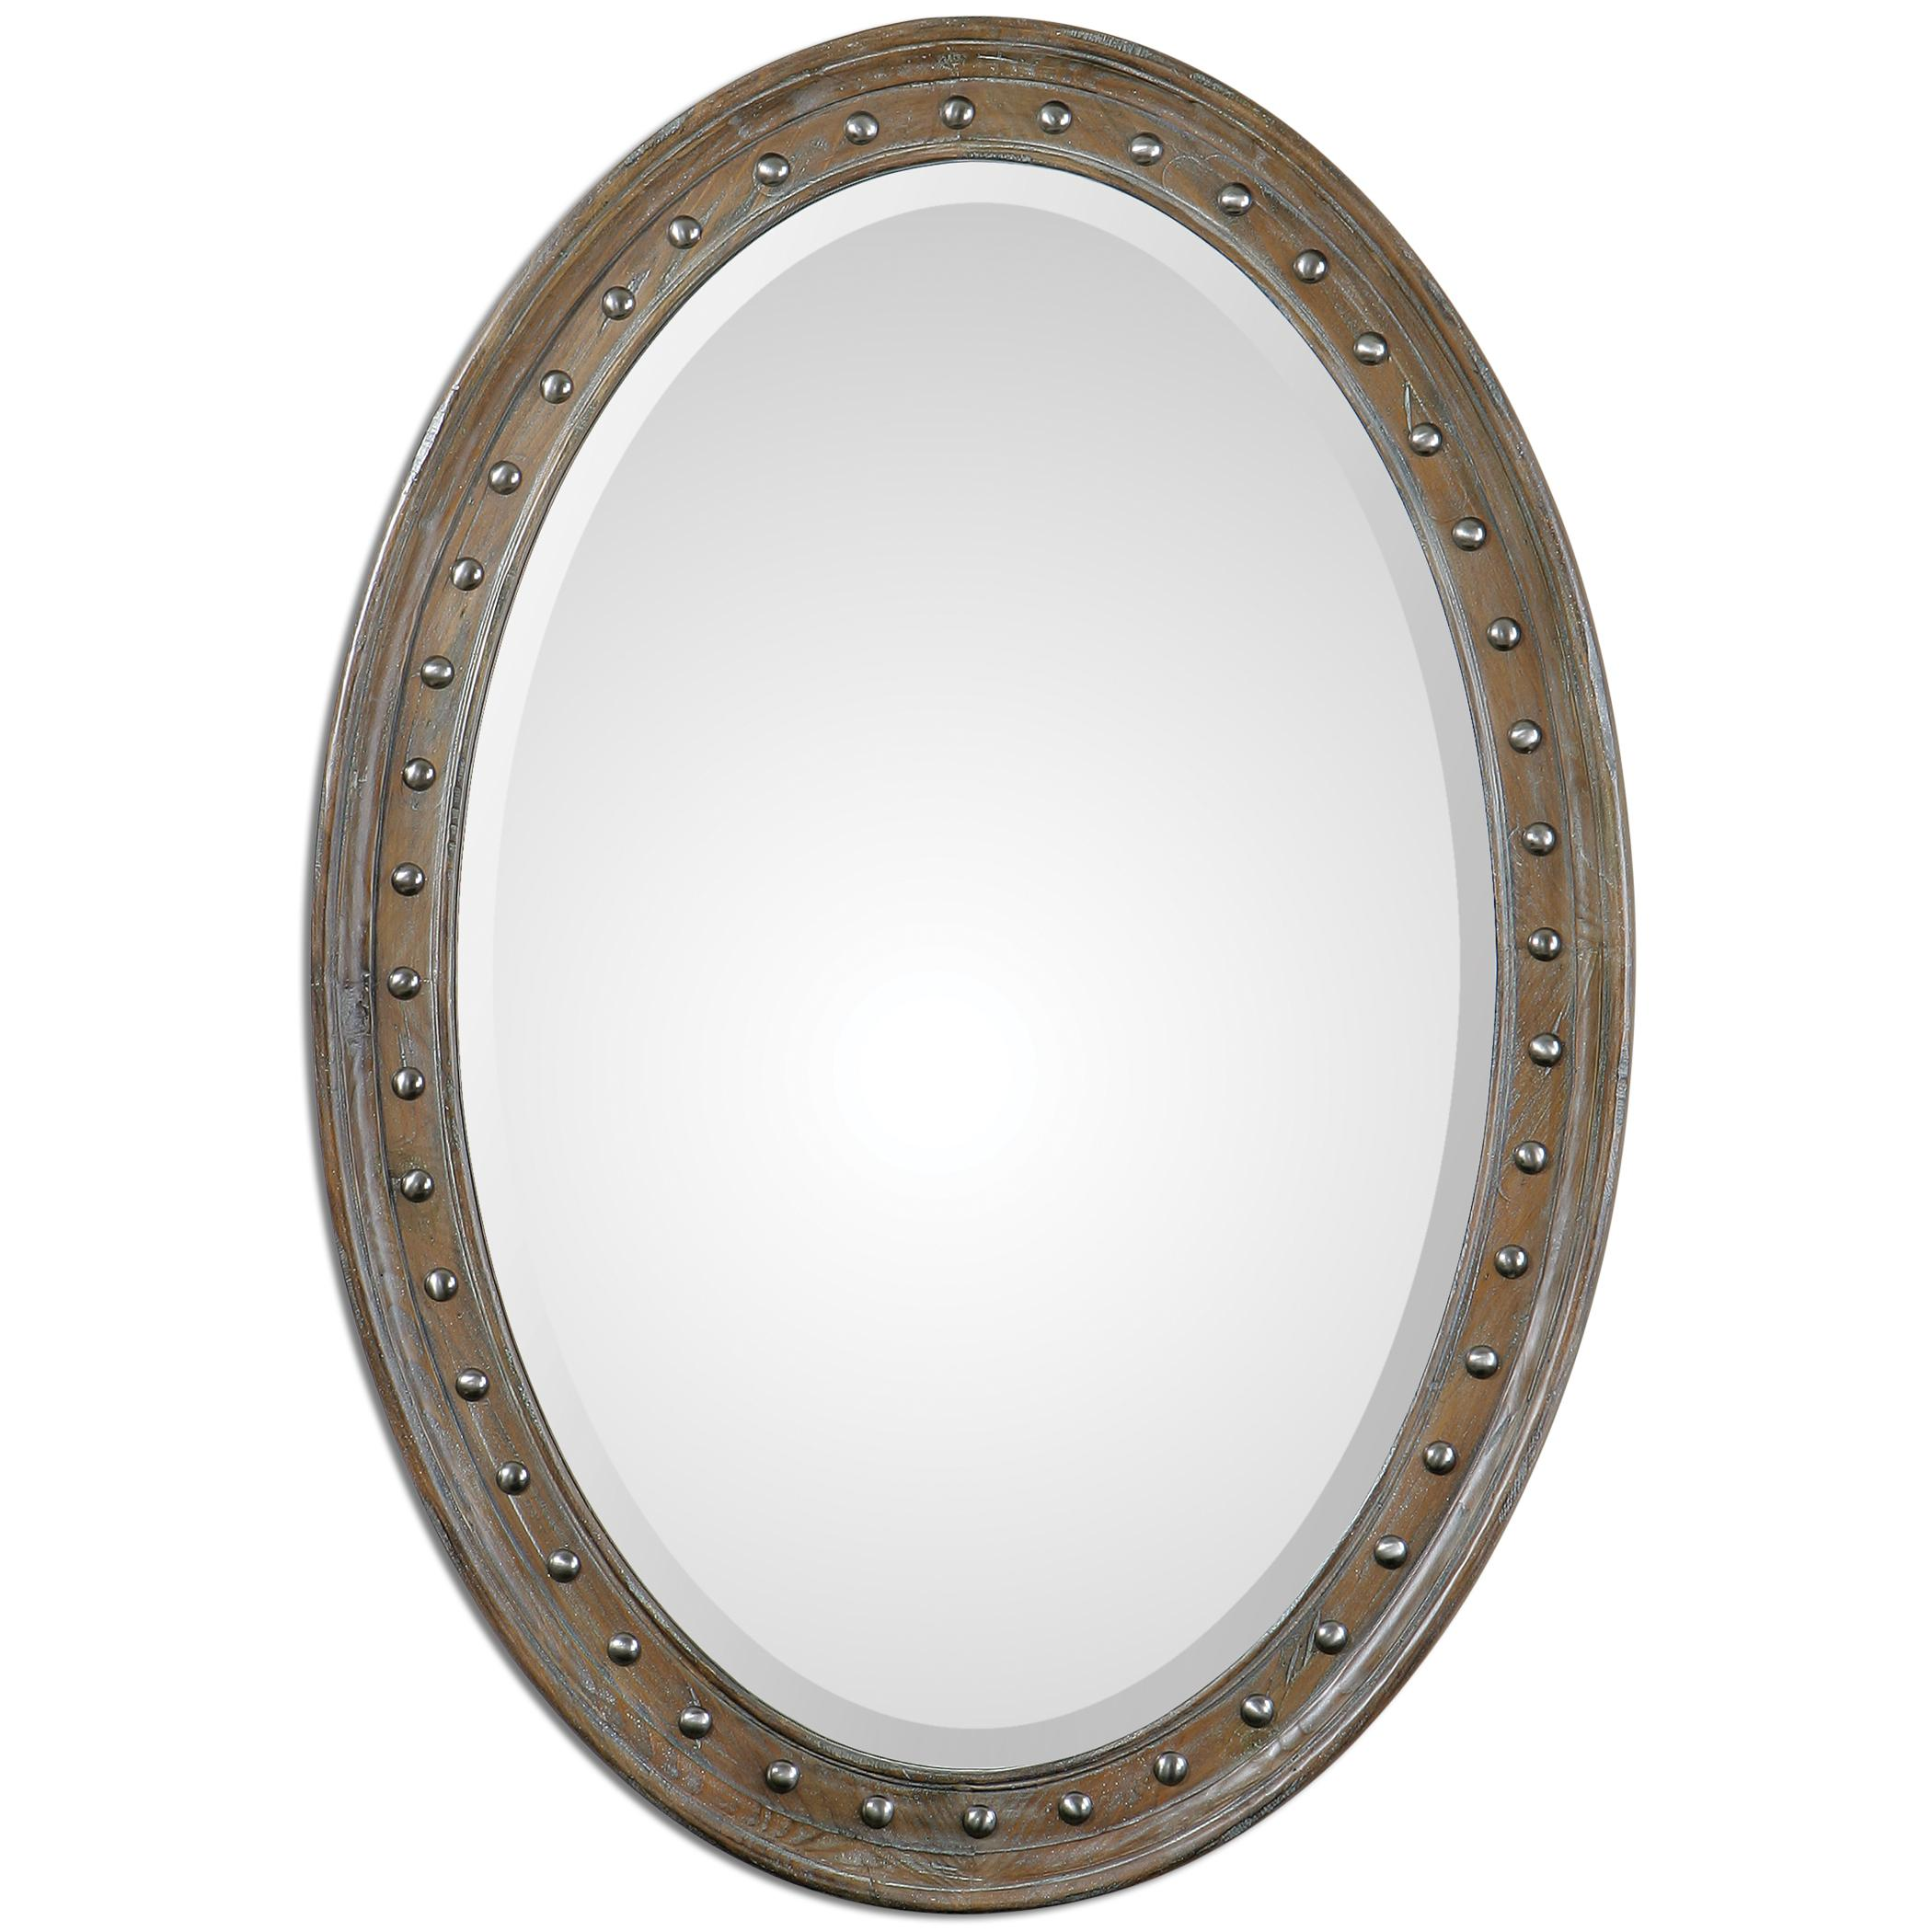 Uttermost Mirrors Sylvana Oval Mirror - Item Number: 11917